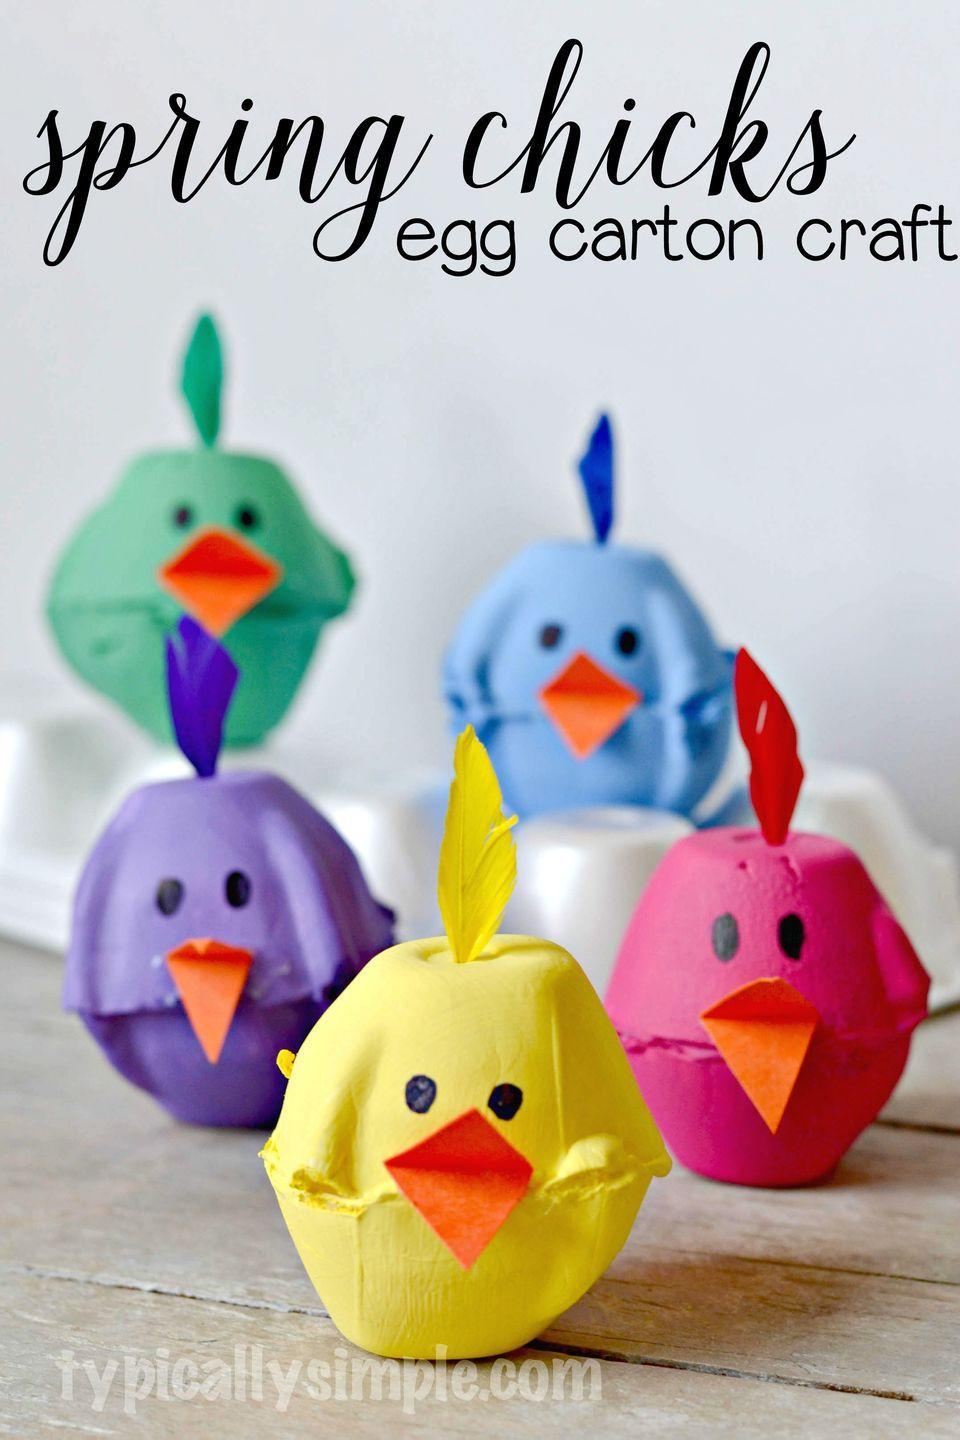 """<p>Use egg cartons to make these colorful spring chicks, topped with a tiny colorful feather!</p><p><strong>Get the tutorial at <a href=""""http://typicallysimple.com/spring-chicks-egg-carton-craft/"""" rel=""""nofollow noopener"""" target=""""_blank"""" data-ylk=""""slk:Typically Simple"""" class=""""link rapid-noclick-resp"""">Typically Simple</a>.</strong></p>"""